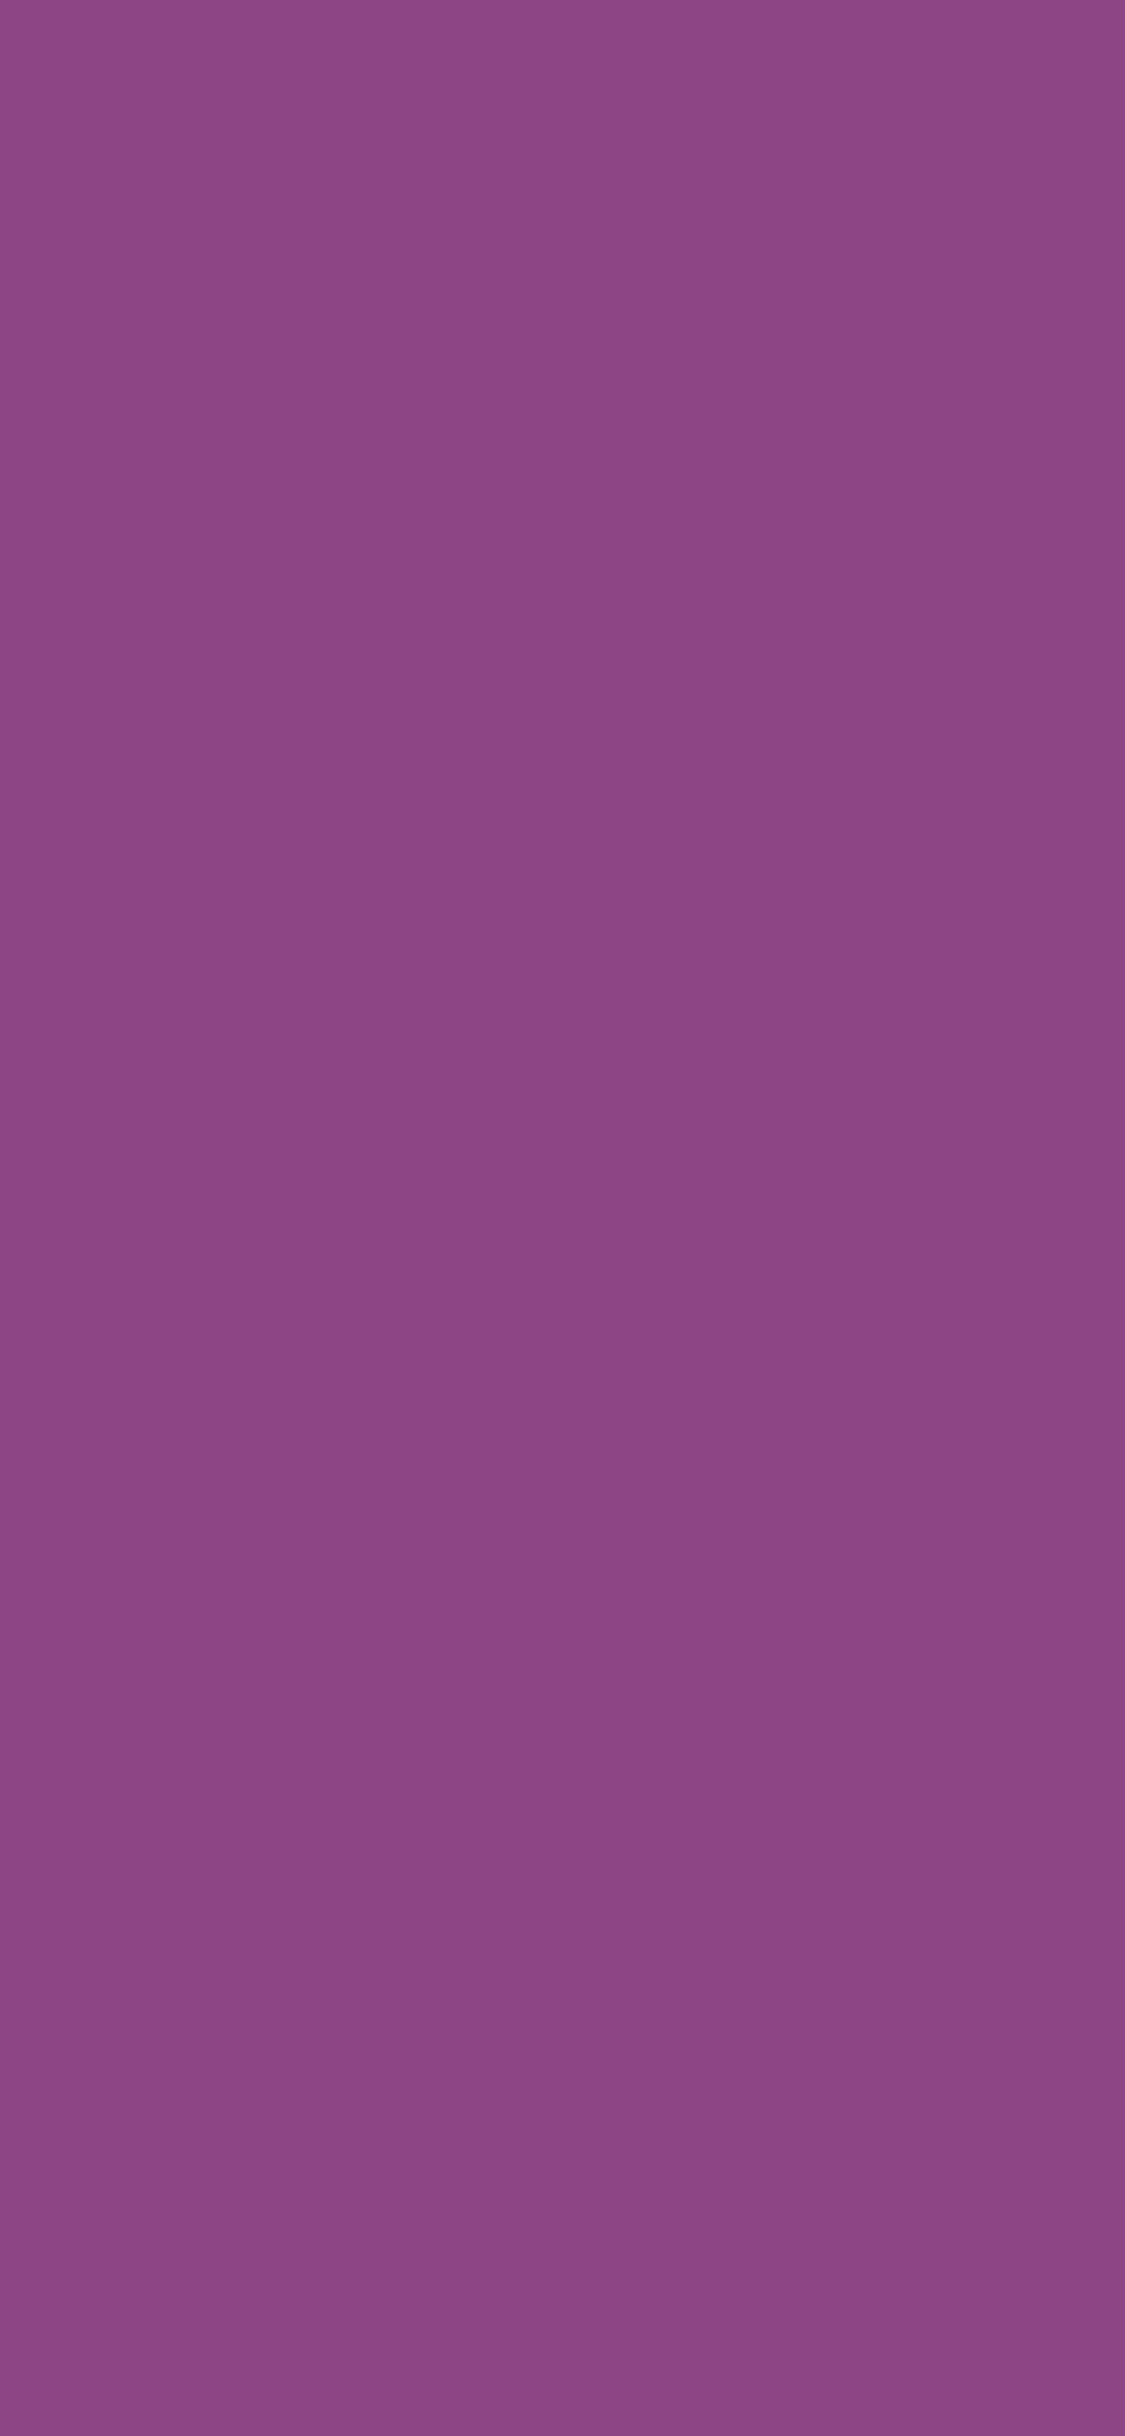 1125x2436 Plum Traditional Solid Color Background